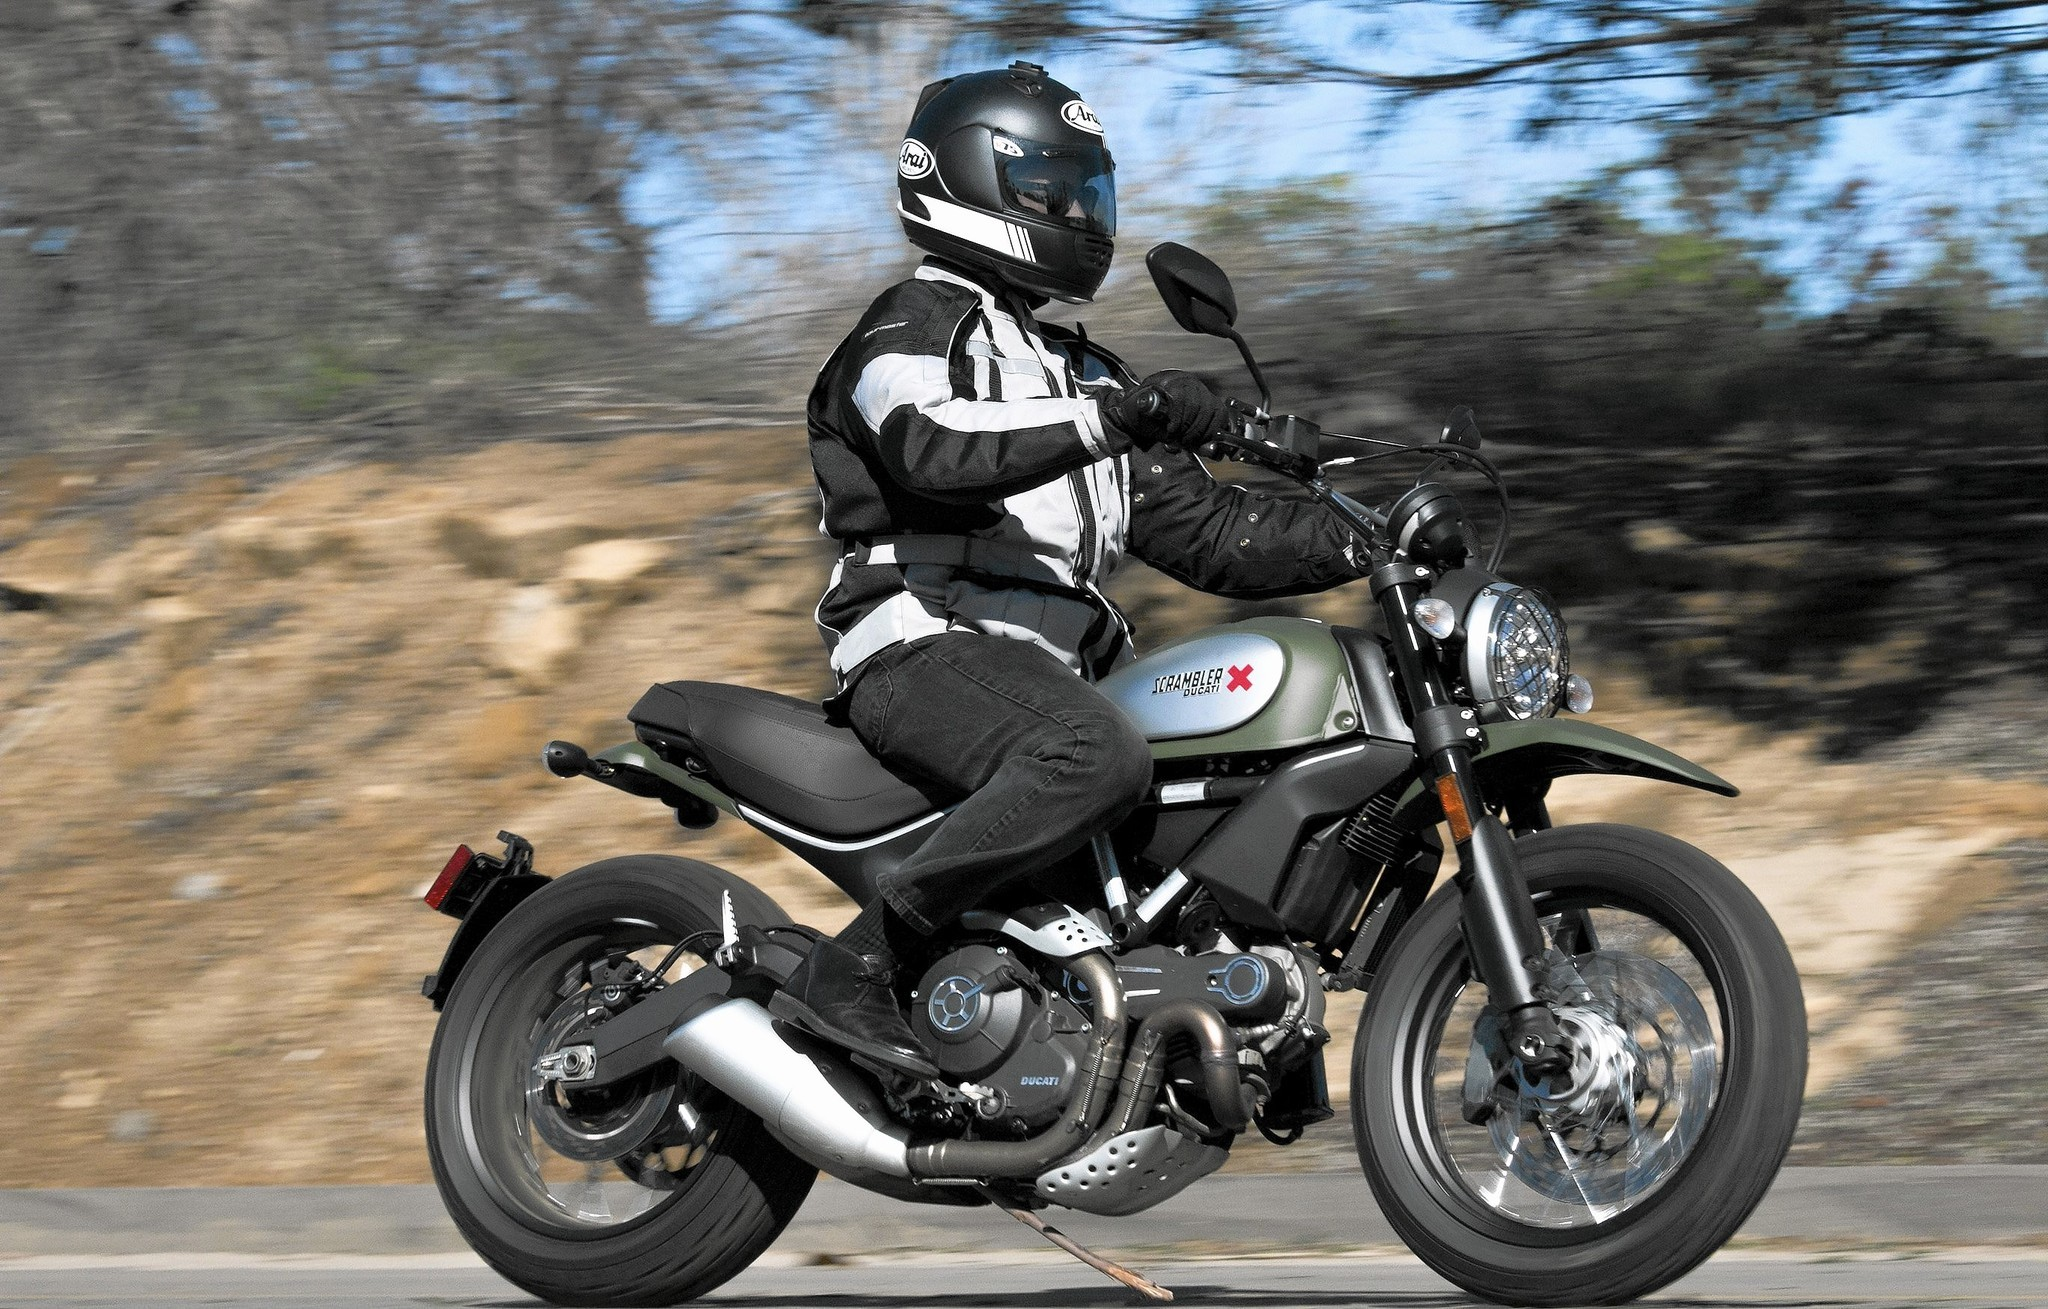 ducati scrambler urban enduro excels on pavement, not so much on